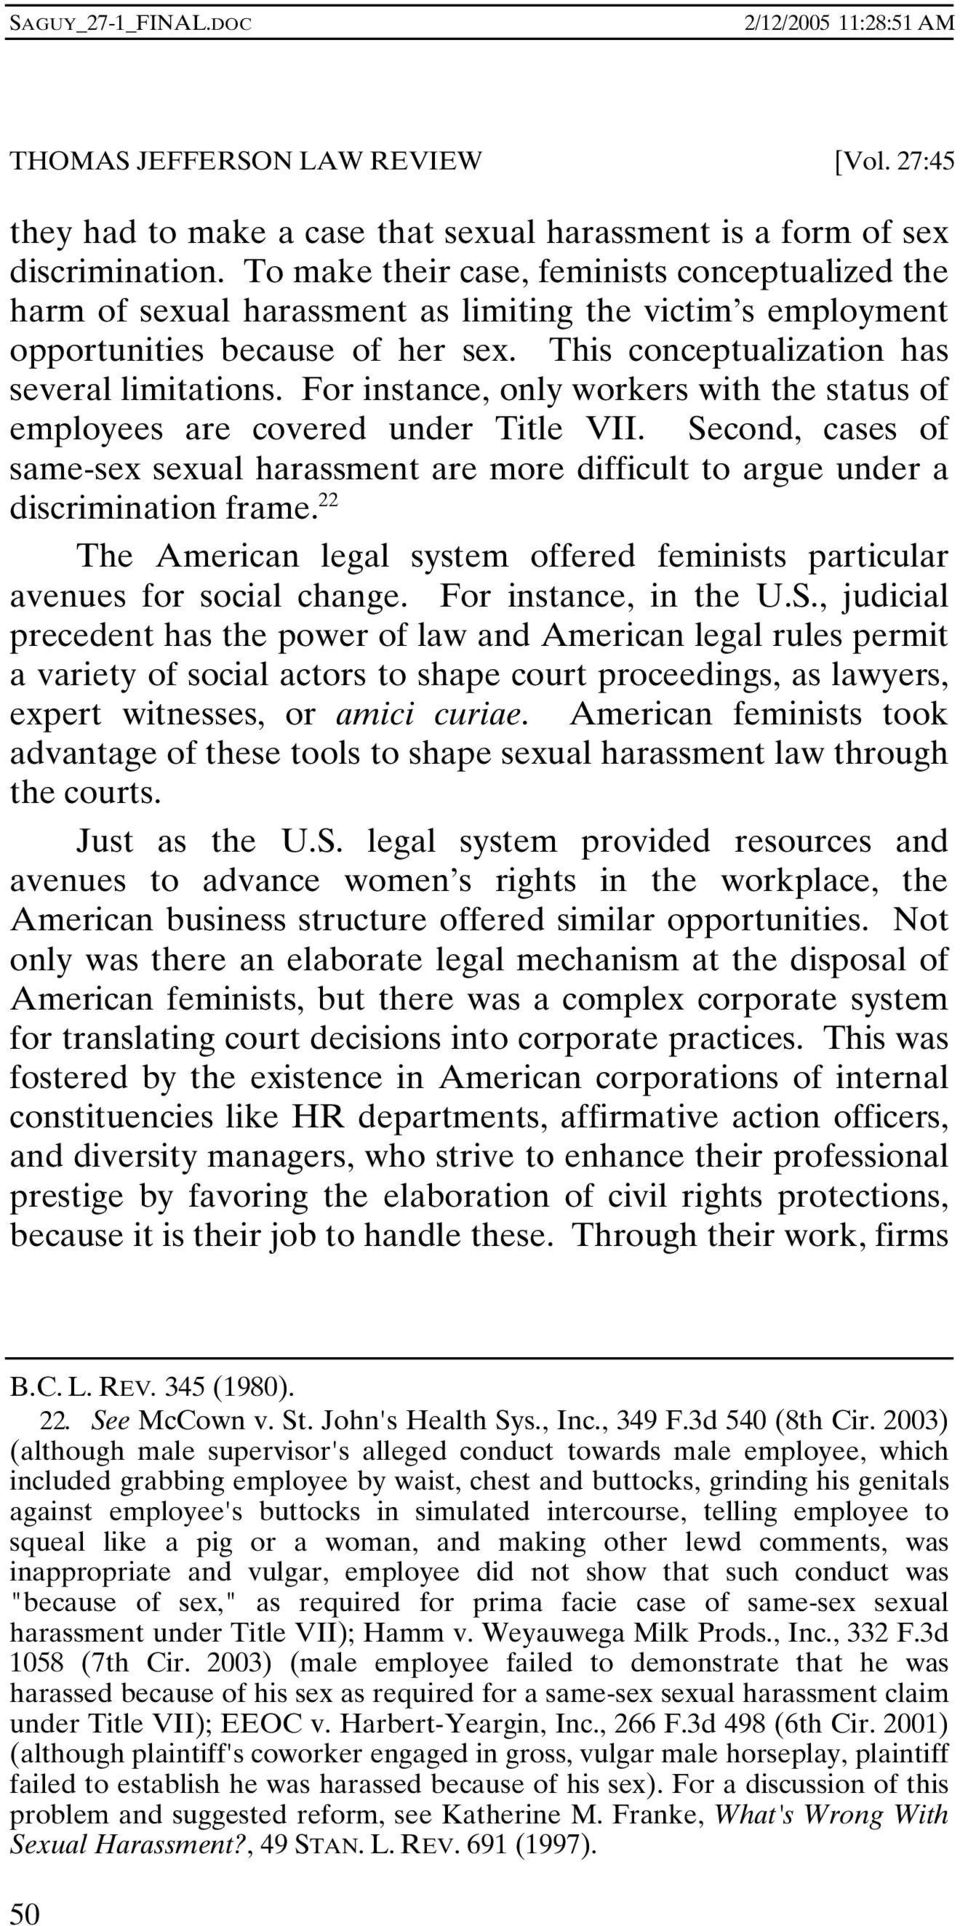 For instance, only workers with the status of employees are covered under Title VII. Second, cases of same-sex sexual harassment are more difficult to argue under a discrimination frame.